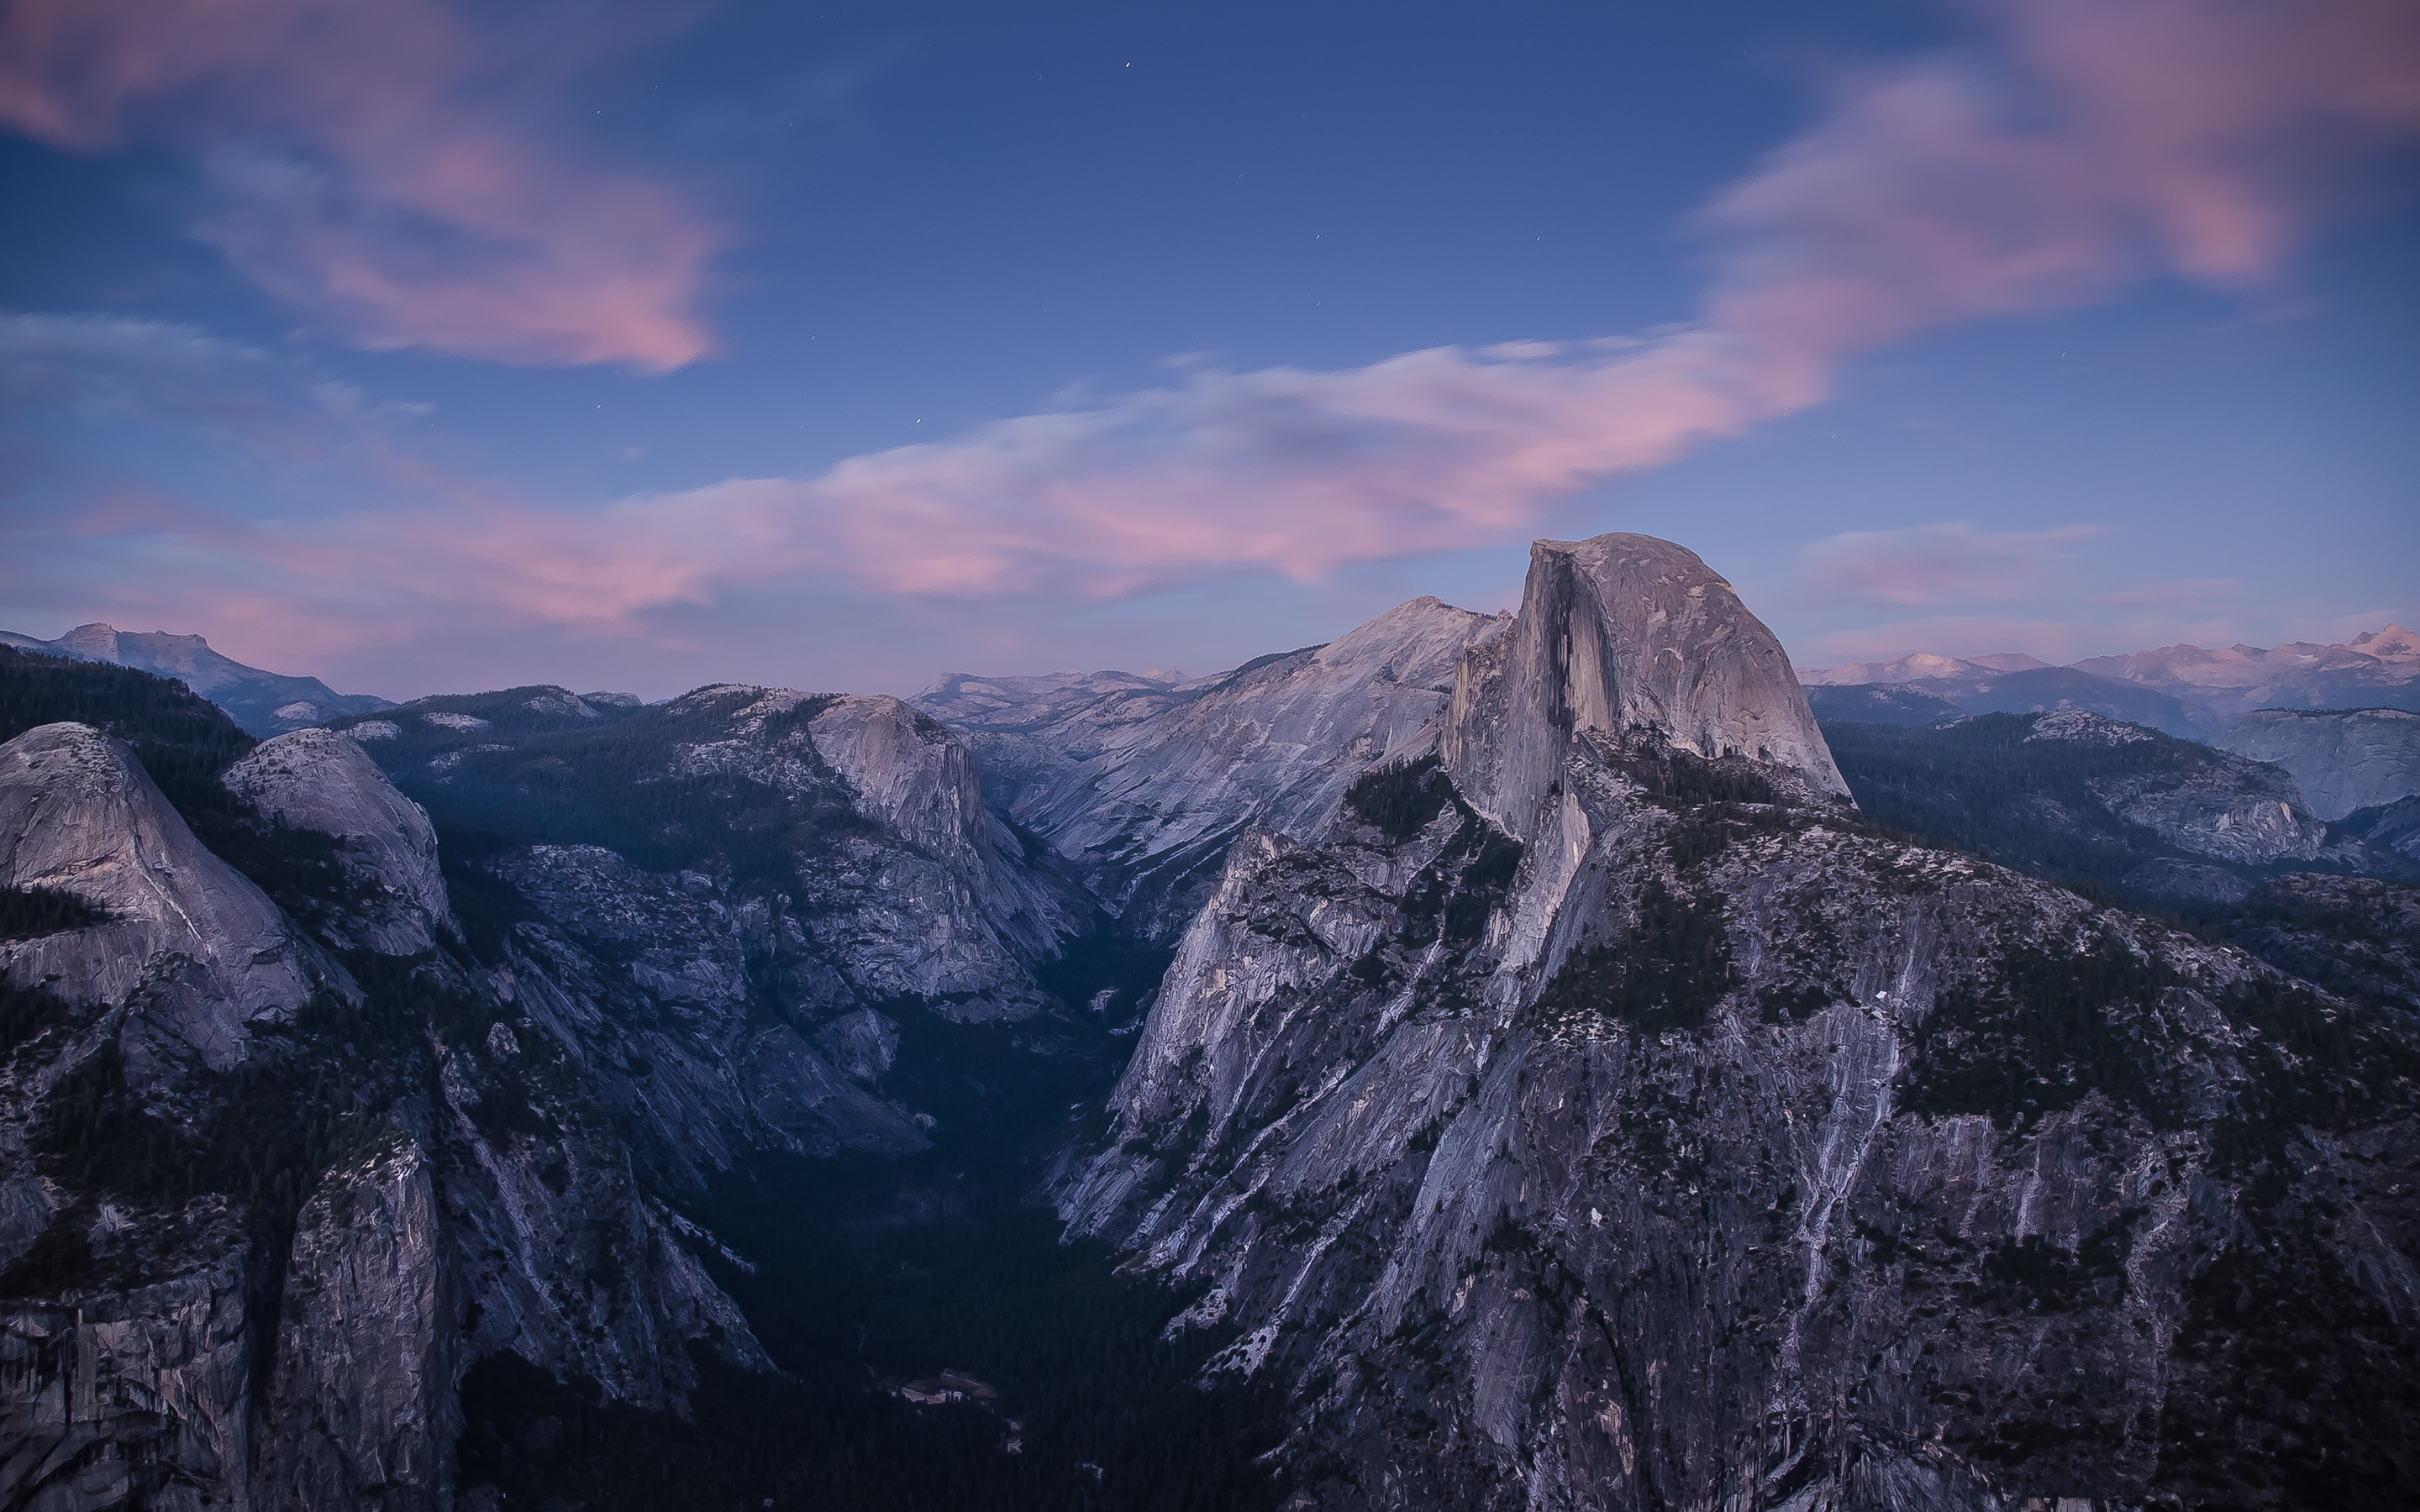 Hd wallpaper yosemite - Free Yosemite Wallpaper